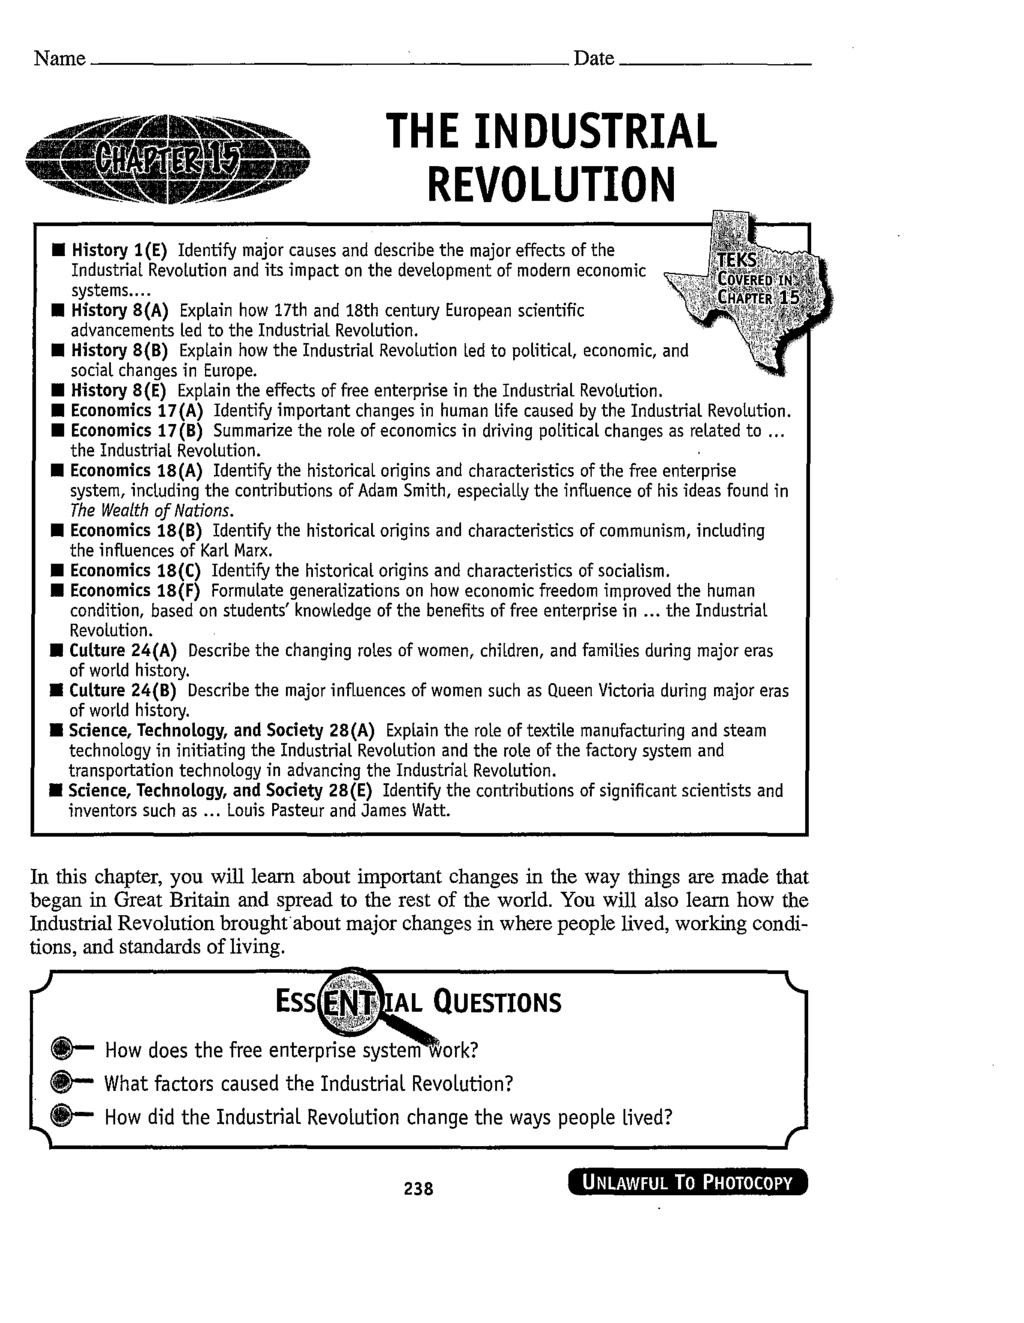 Industrial Revolution Worksheet Pdf the Industrial Revolution Pdf Free Download